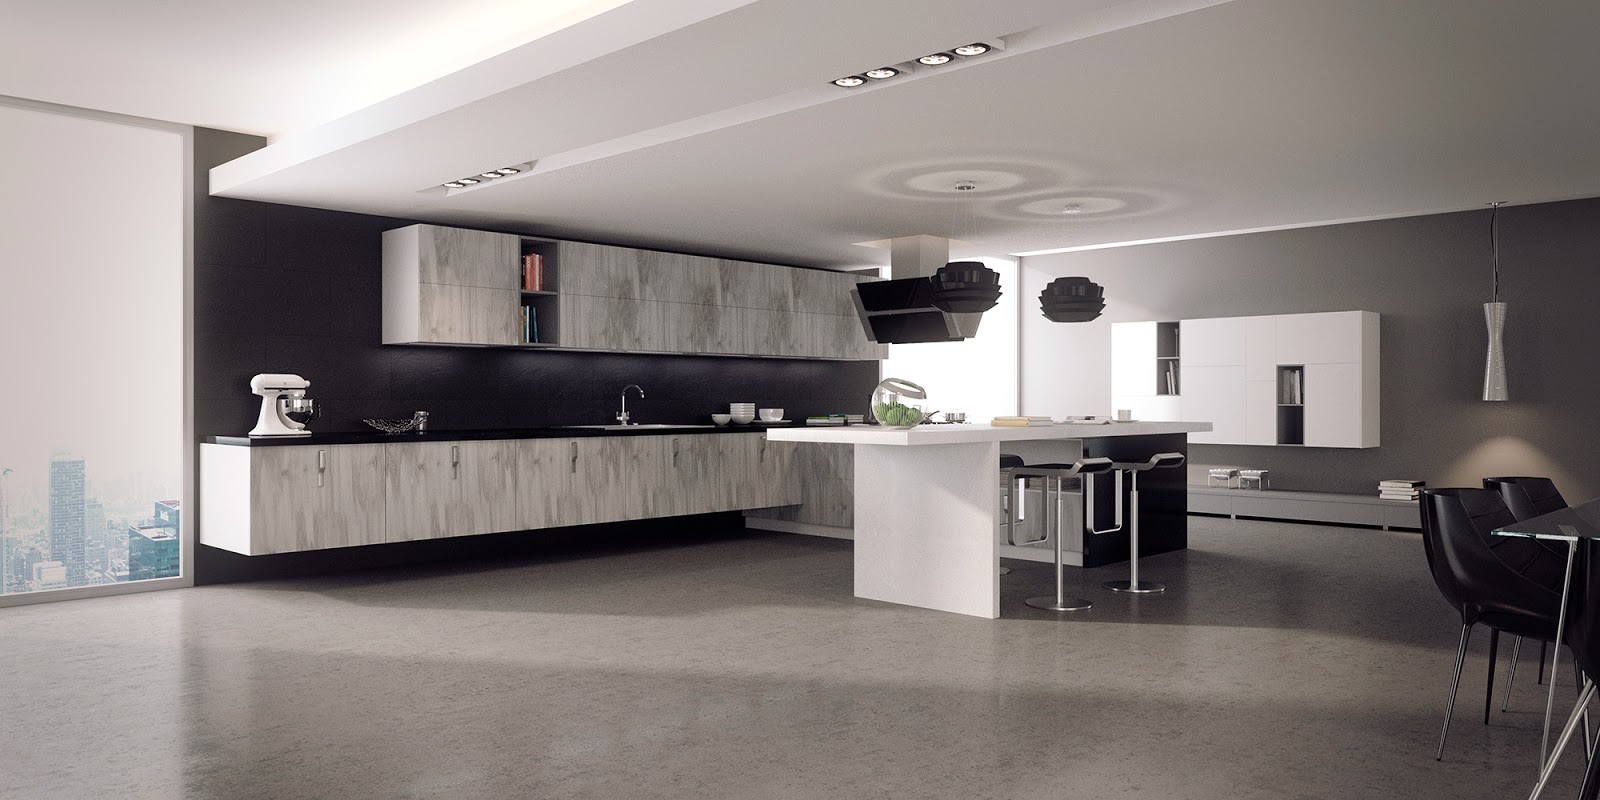 Jose vicente sanz march ambiente cocina con muebles en for Muebles oficina 3ds max